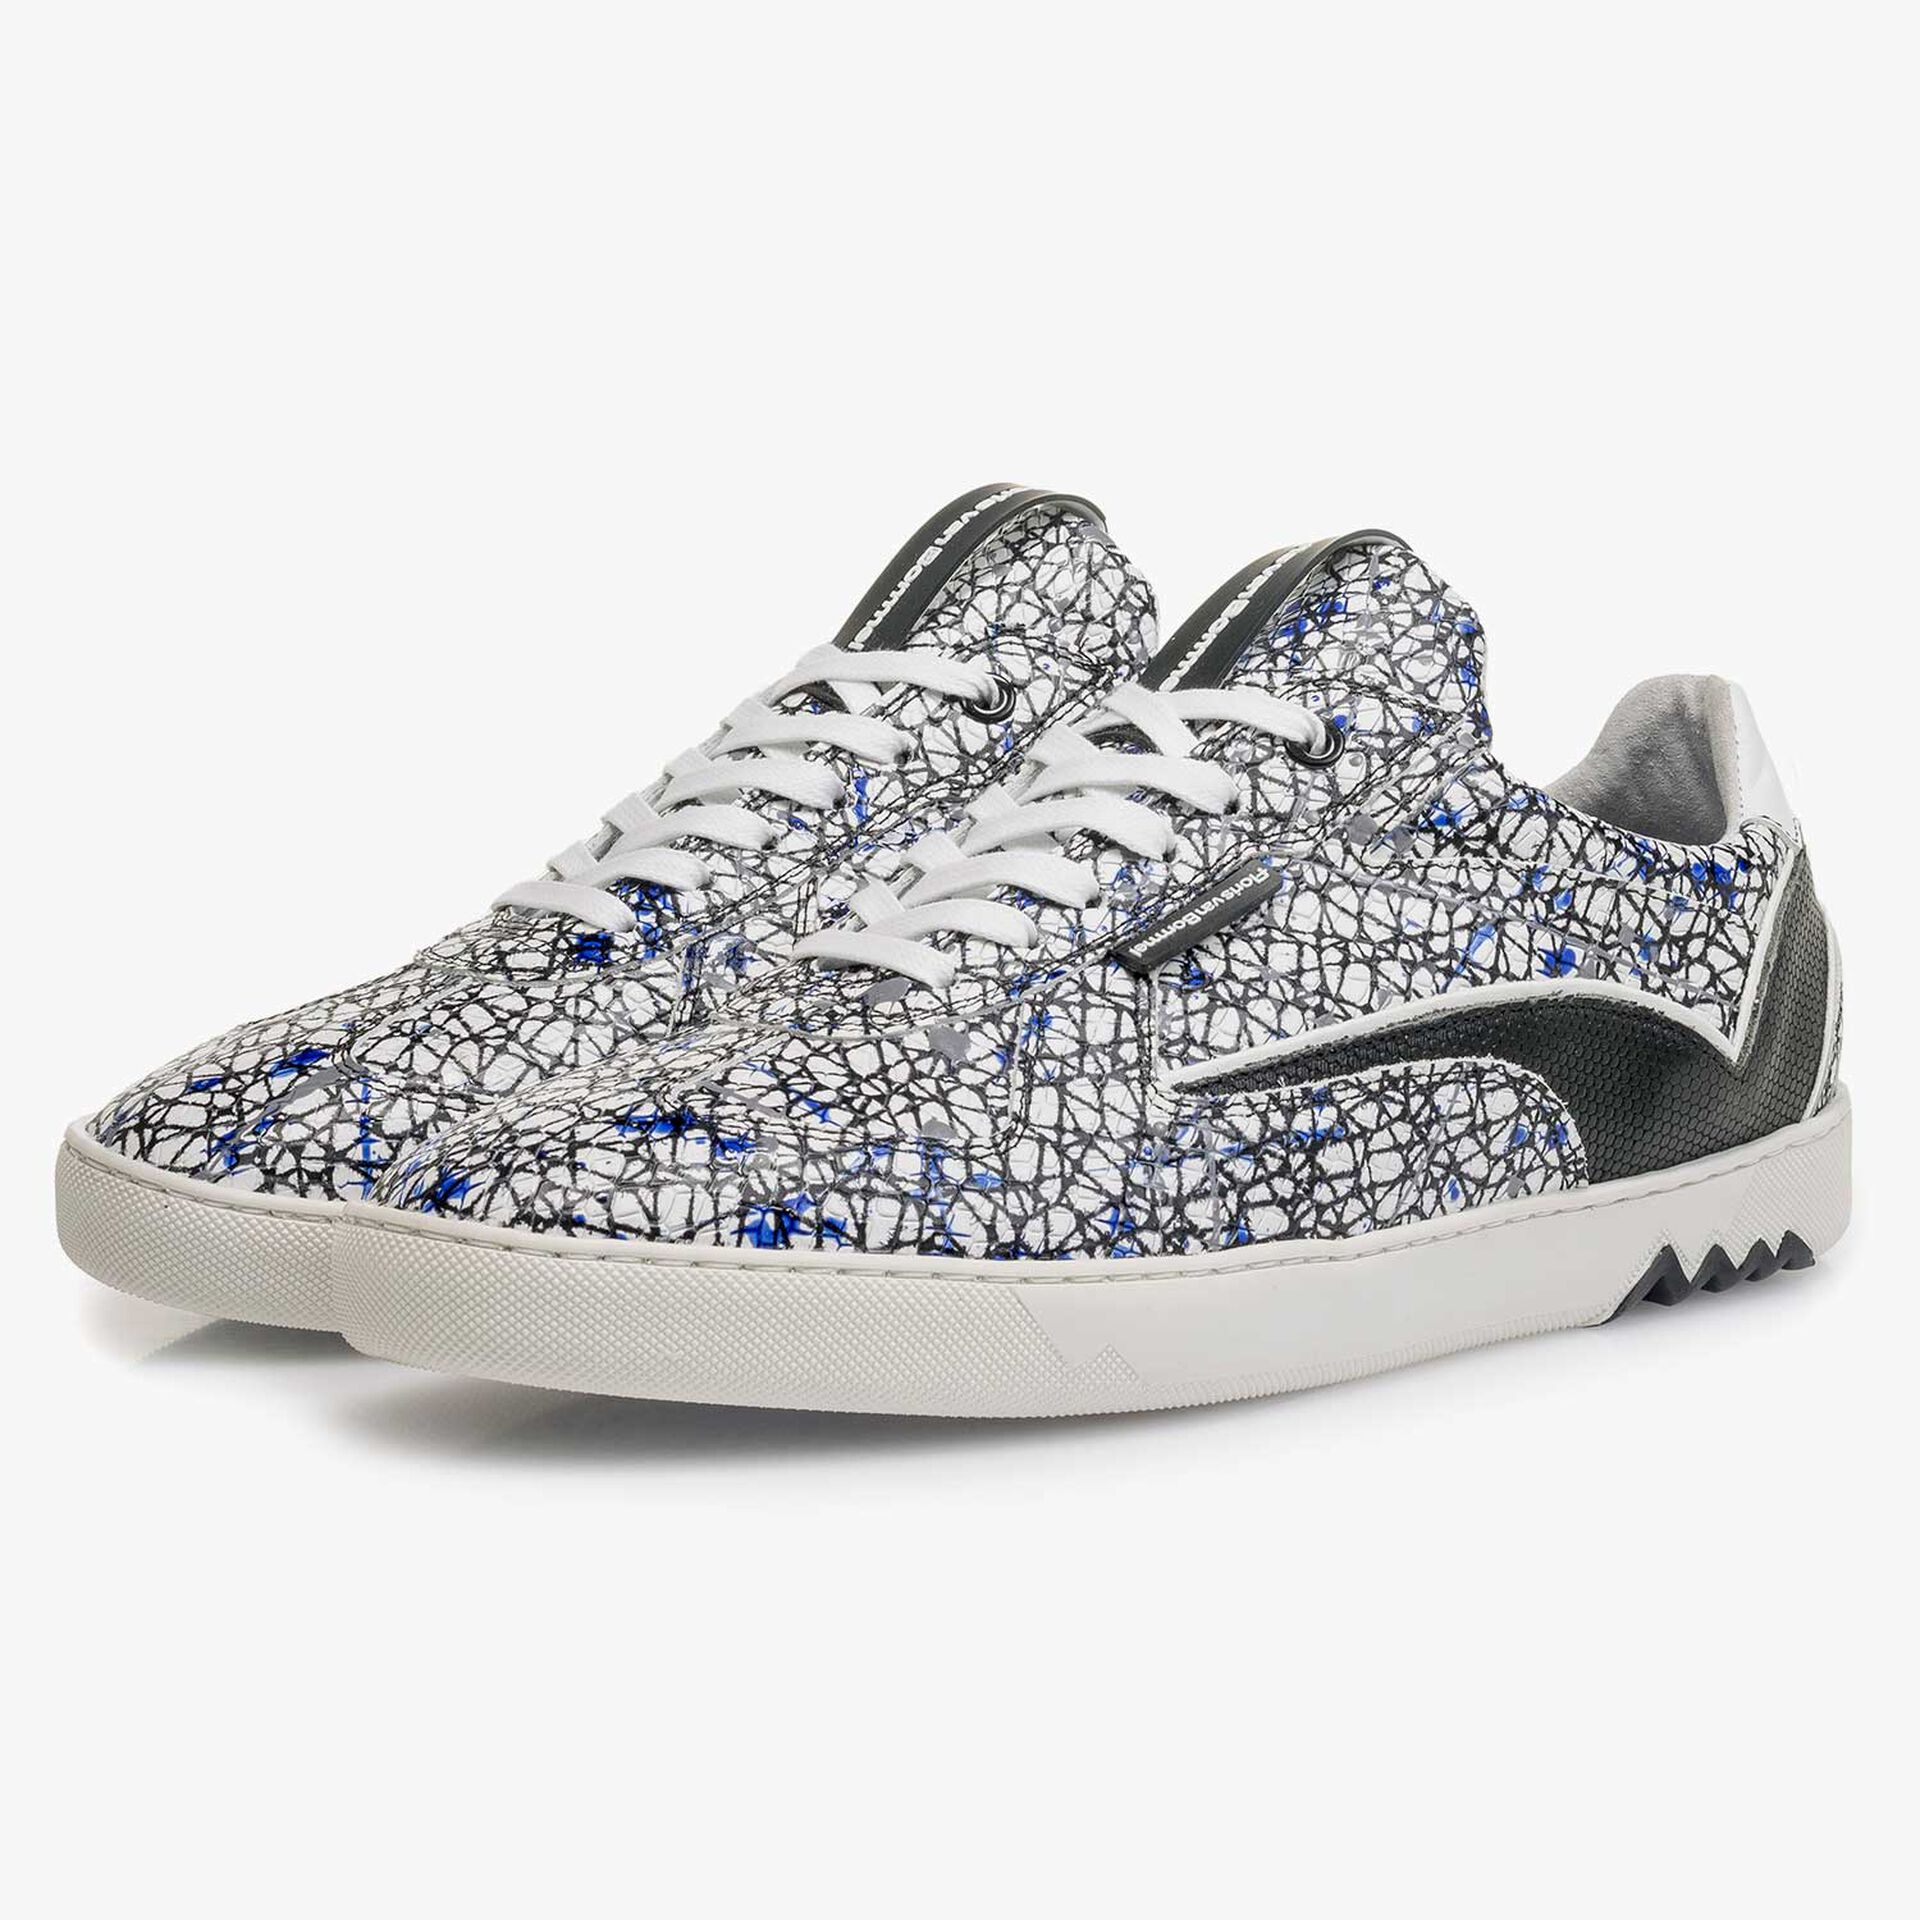 White calf leather sneaker with a print